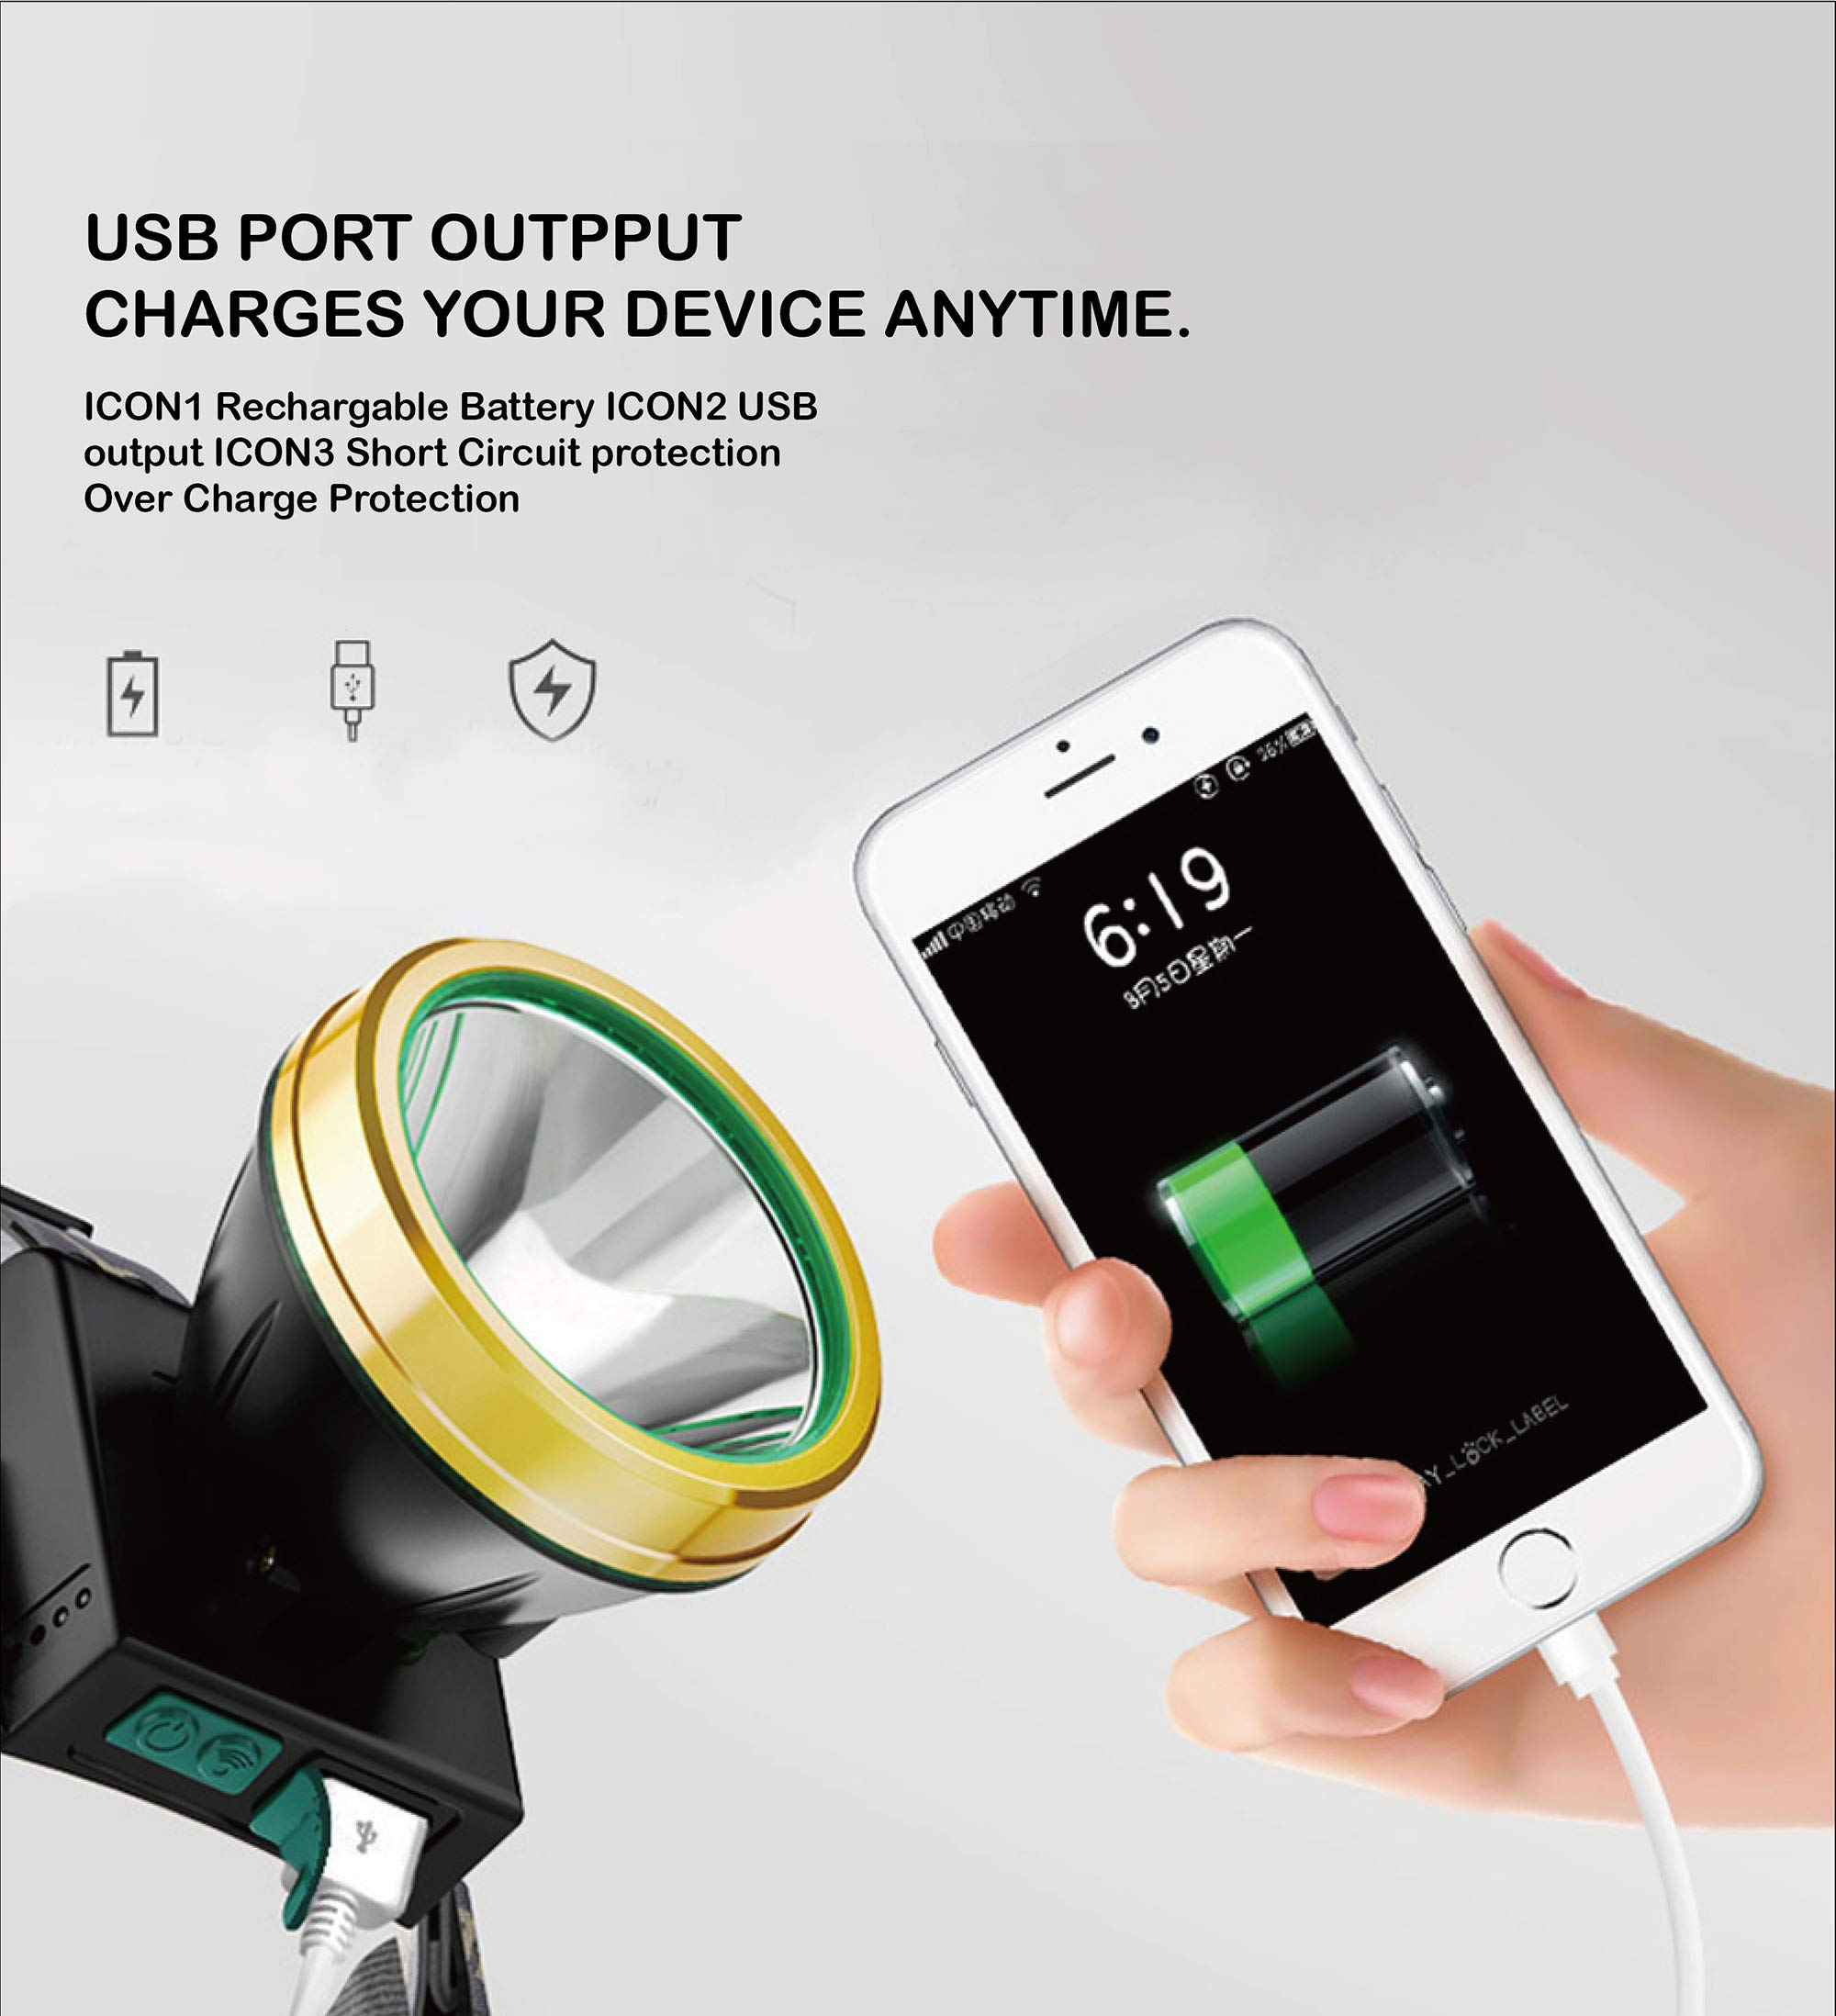 LED Headlamp, LED Headlamp USB Rechargeable, LED Headlamp Flashlight, Outdoor USB LED Headlamp, Waterproof with 2 Lighting Modes, Battery Powered Swivel LED Headlight for Camping and Hiking by Cavepop (Image #6)